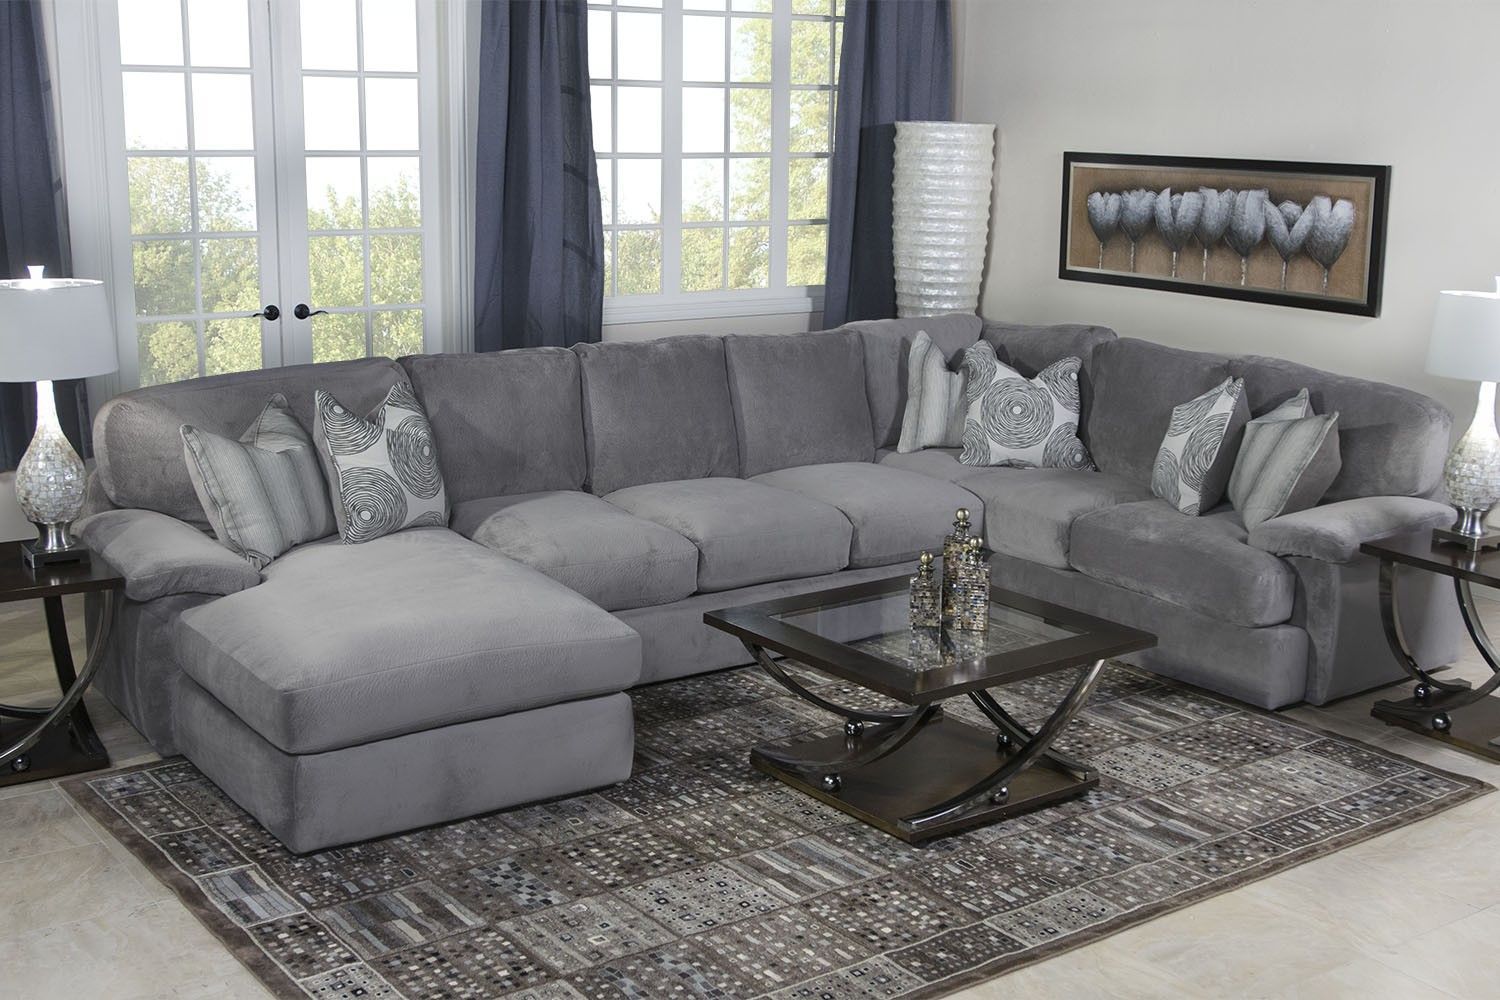 Key west sectional living room in gray living room mor for Living room designs with grey sofa